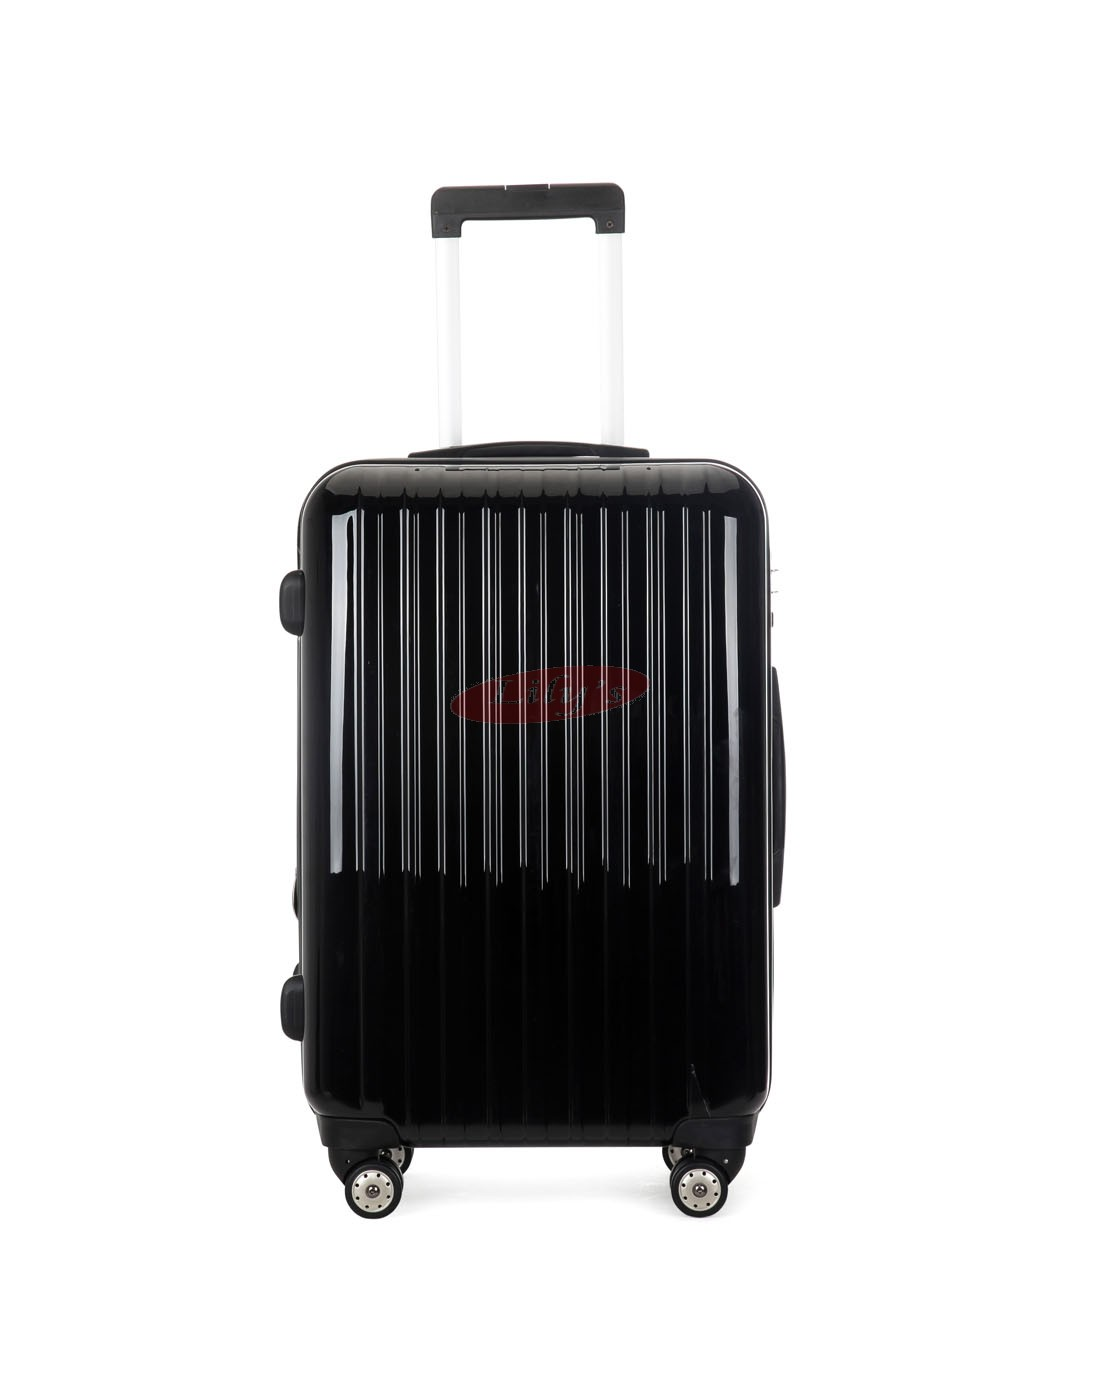 AIRCROSS Luggage A55 Black Hard Case Expandable Trolley Luggage - 24""